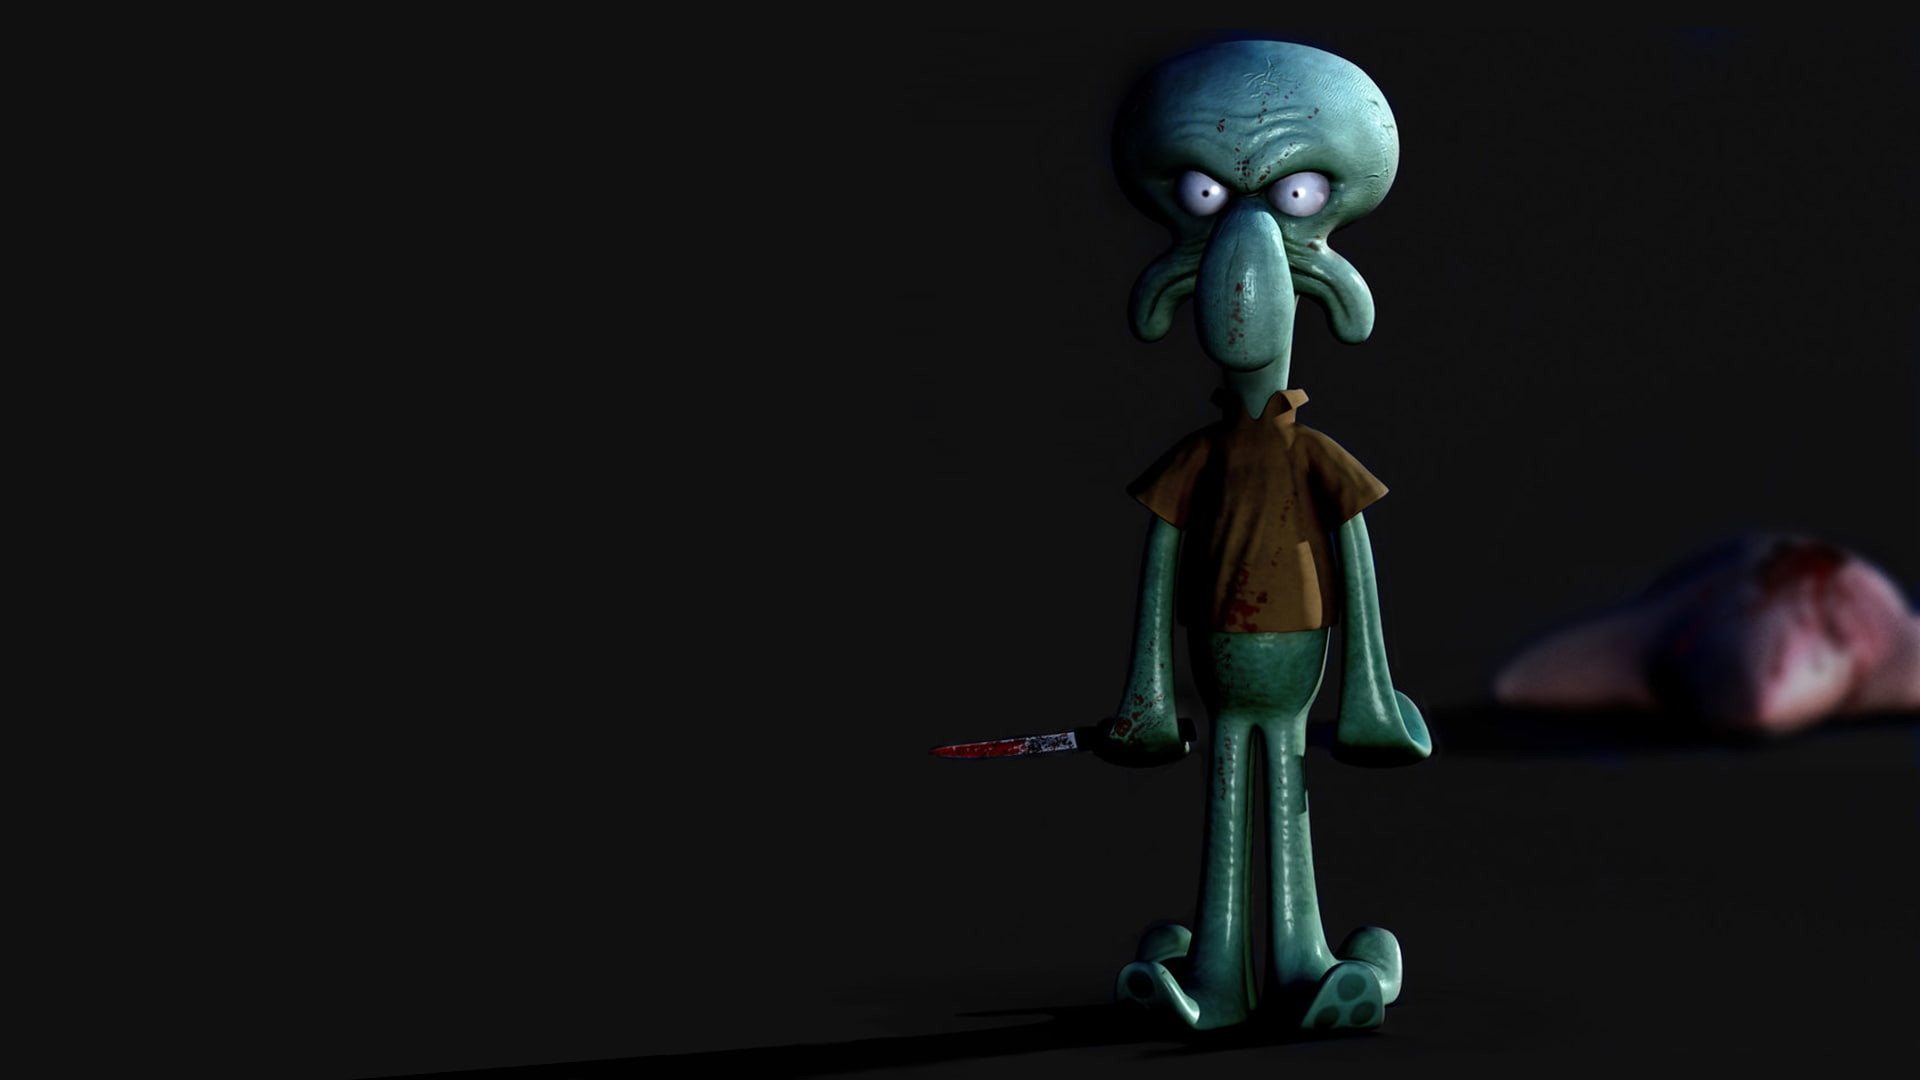 Res: 1920x1080, HD wallpaper: Squidward Tentacles, SpongeBob SquarePants | Wallpaper Flare